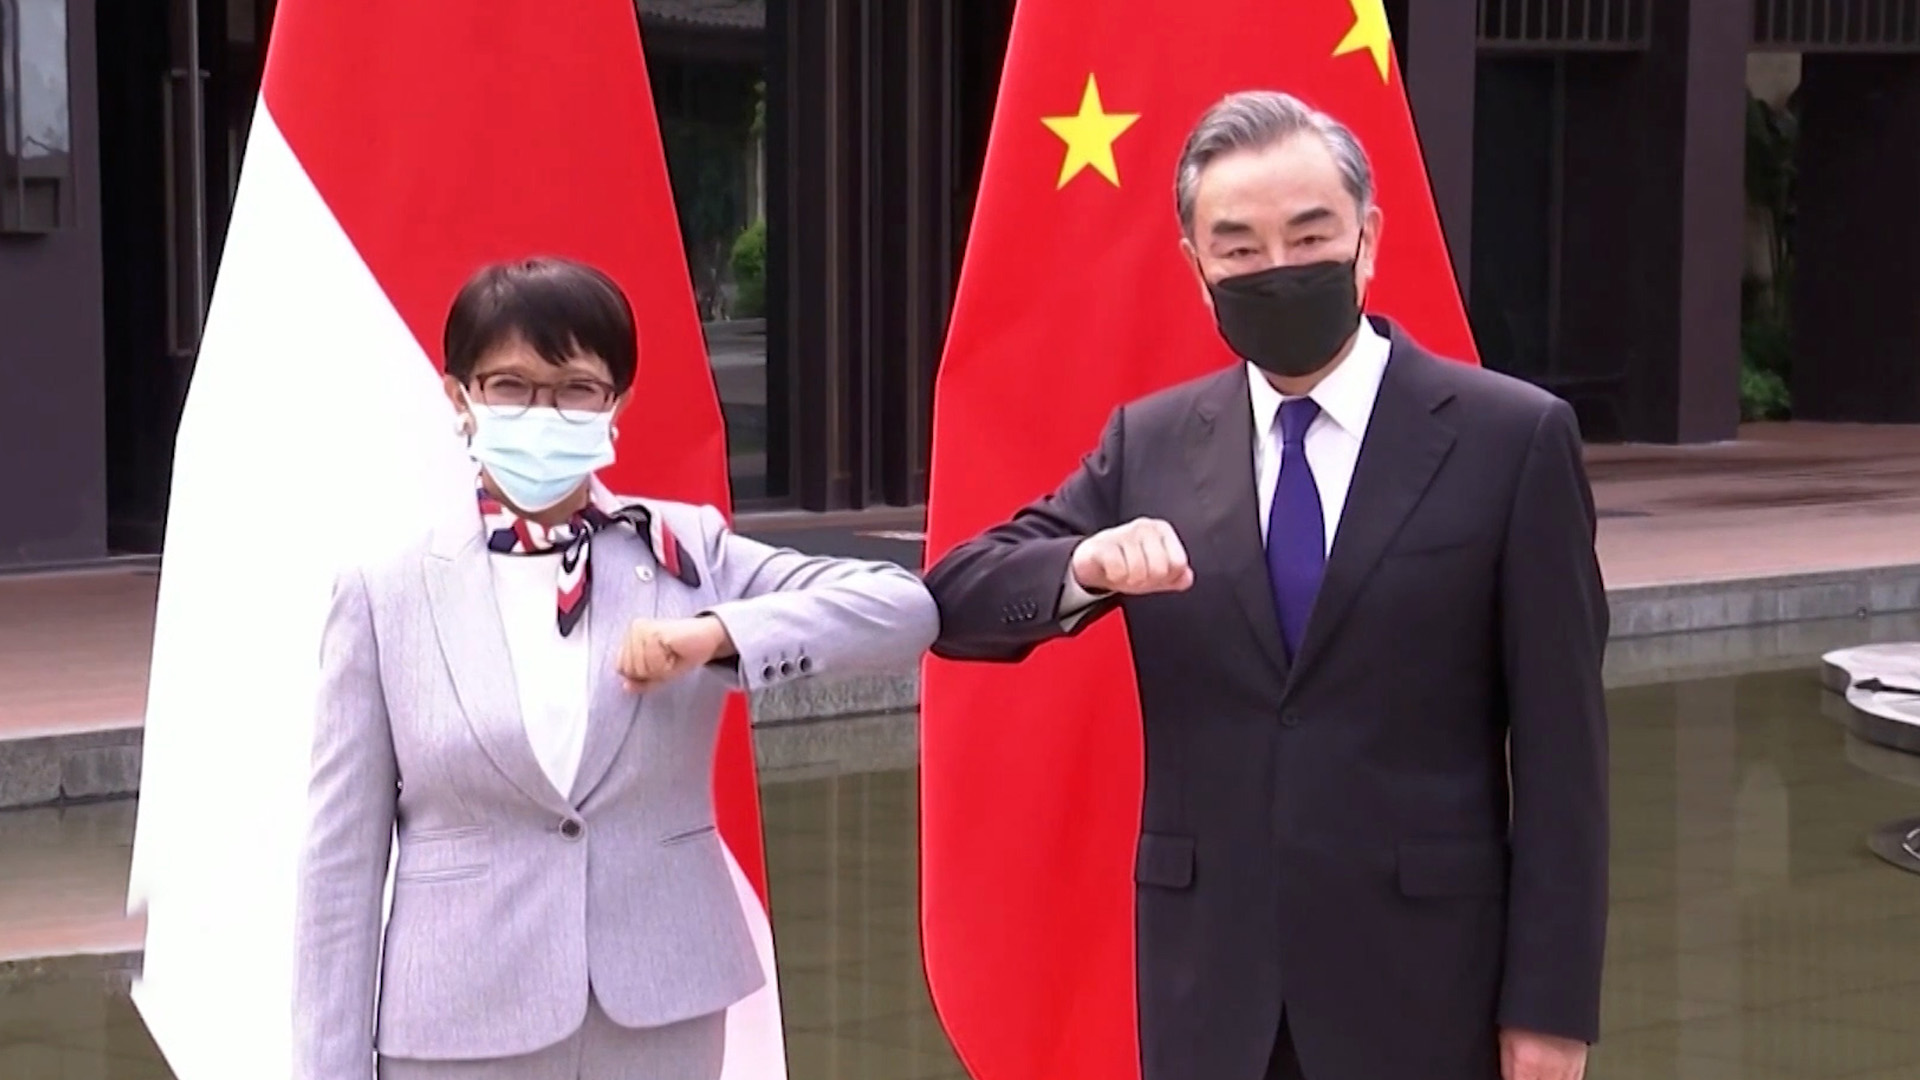 Ep.137 The outcome of S. Korea-China foreign ministers' meeting